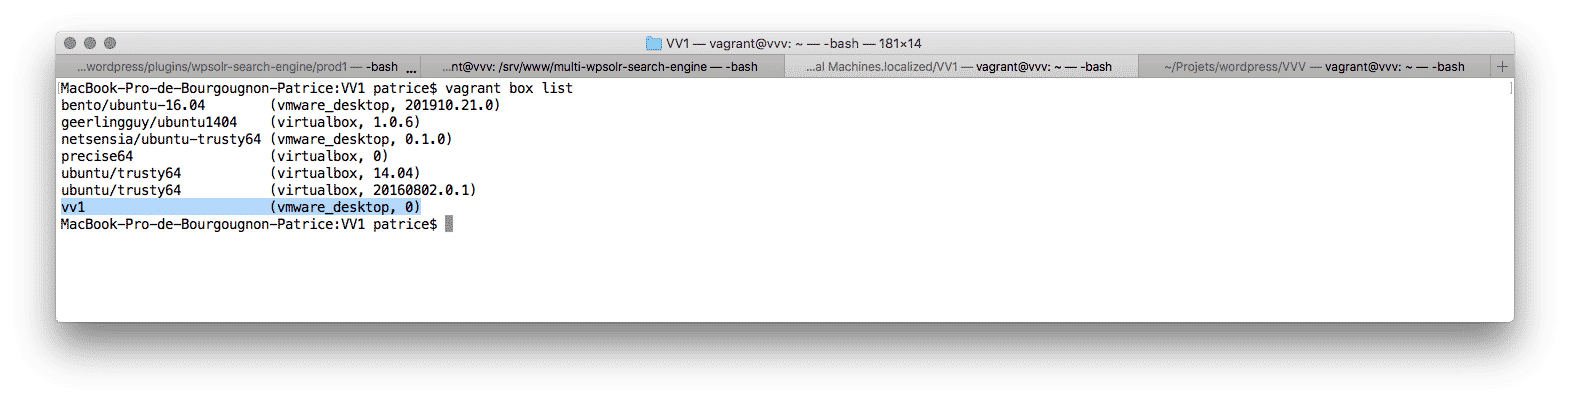 Image word-image-7.png of How to replace a VMWare Fusion Pro VM in a Vagrant deployment?